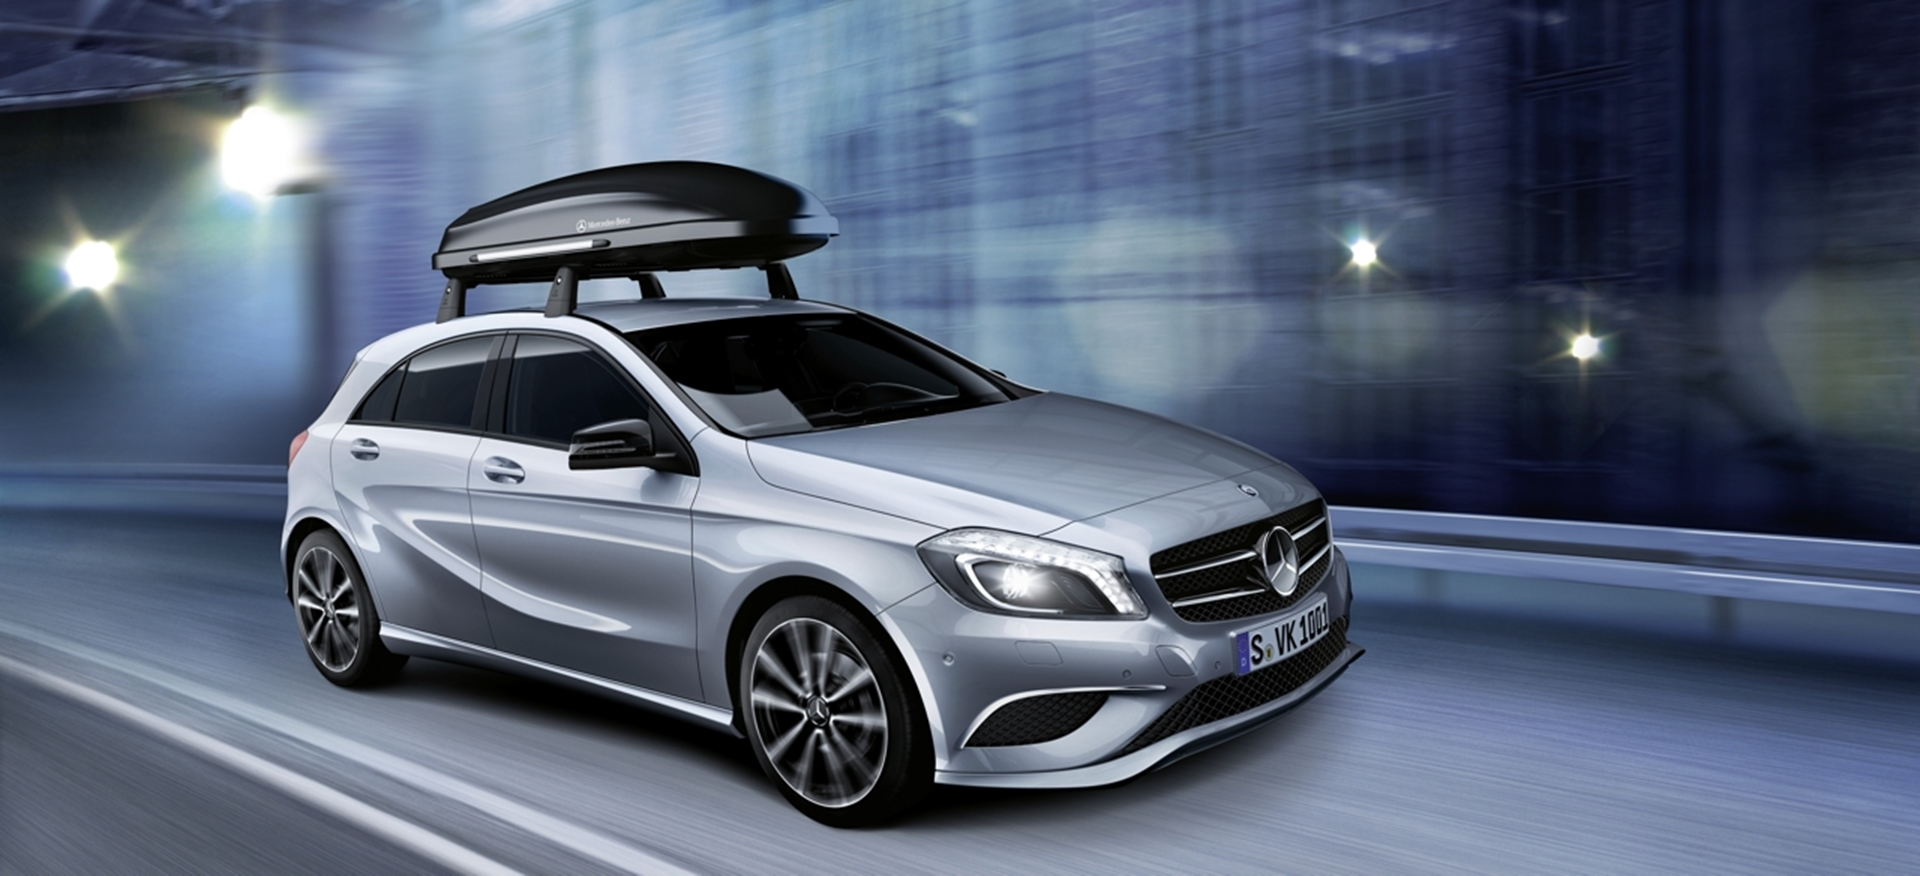 Mercedes-Benz A-Class Roof Carrier